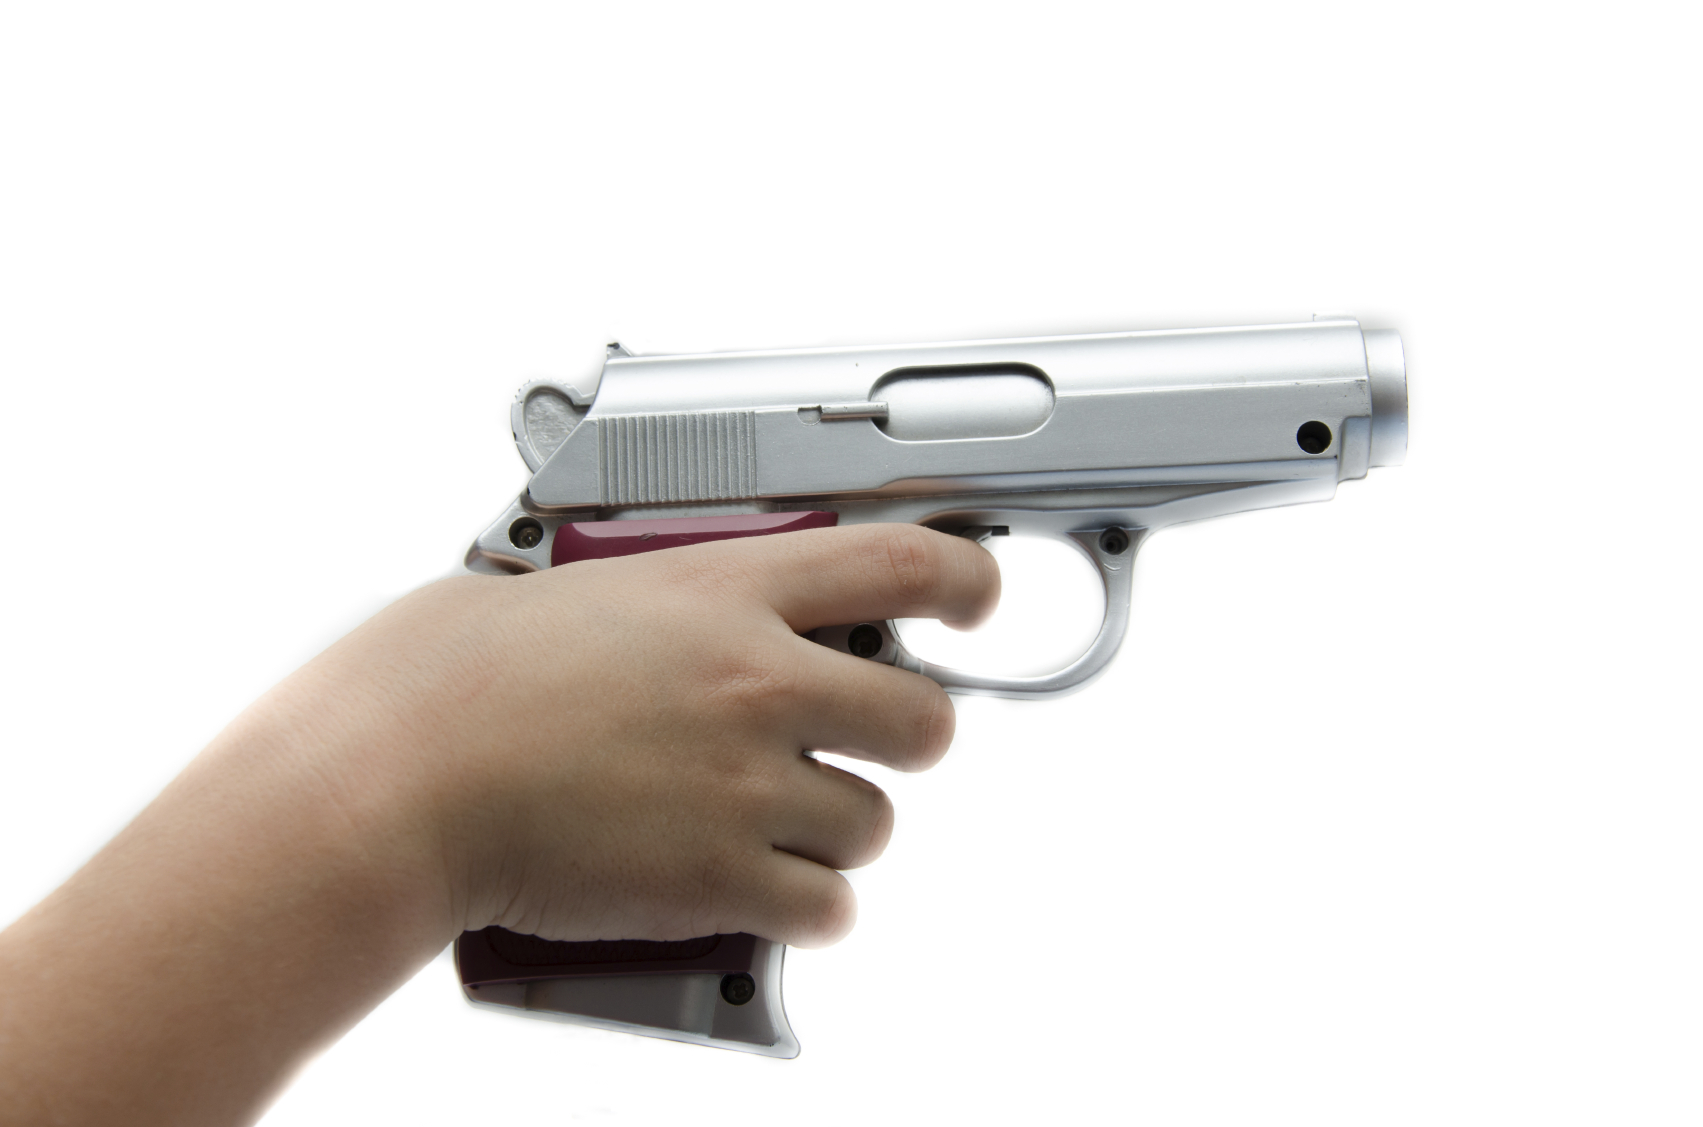 child's hand holding a gun